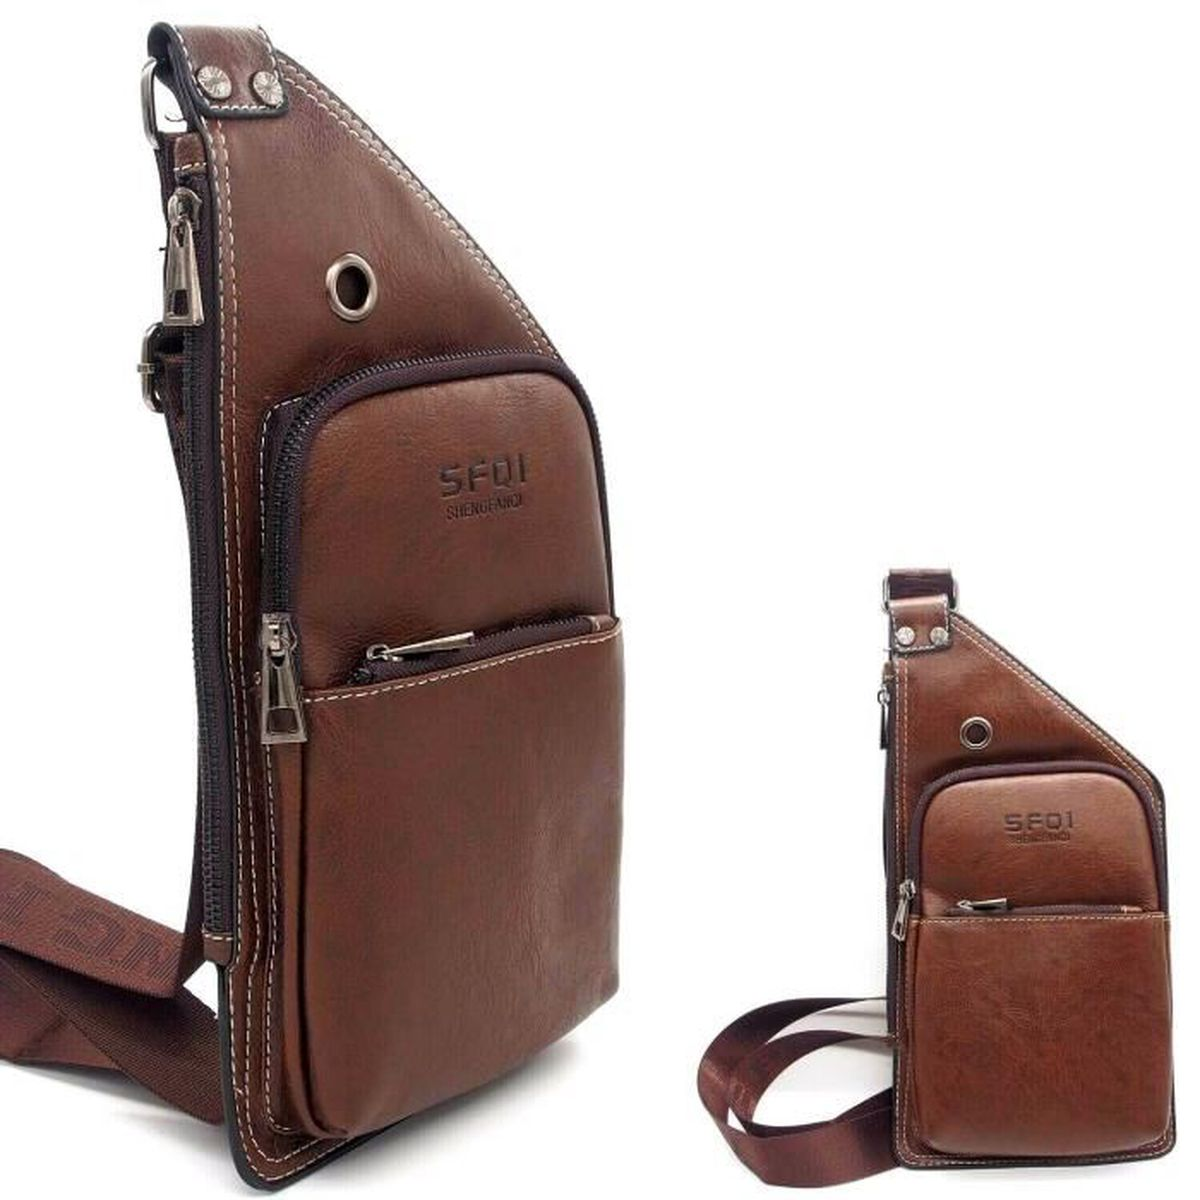 7bcc0db768 Sacoche holster homme - Achat / Vente pas cher